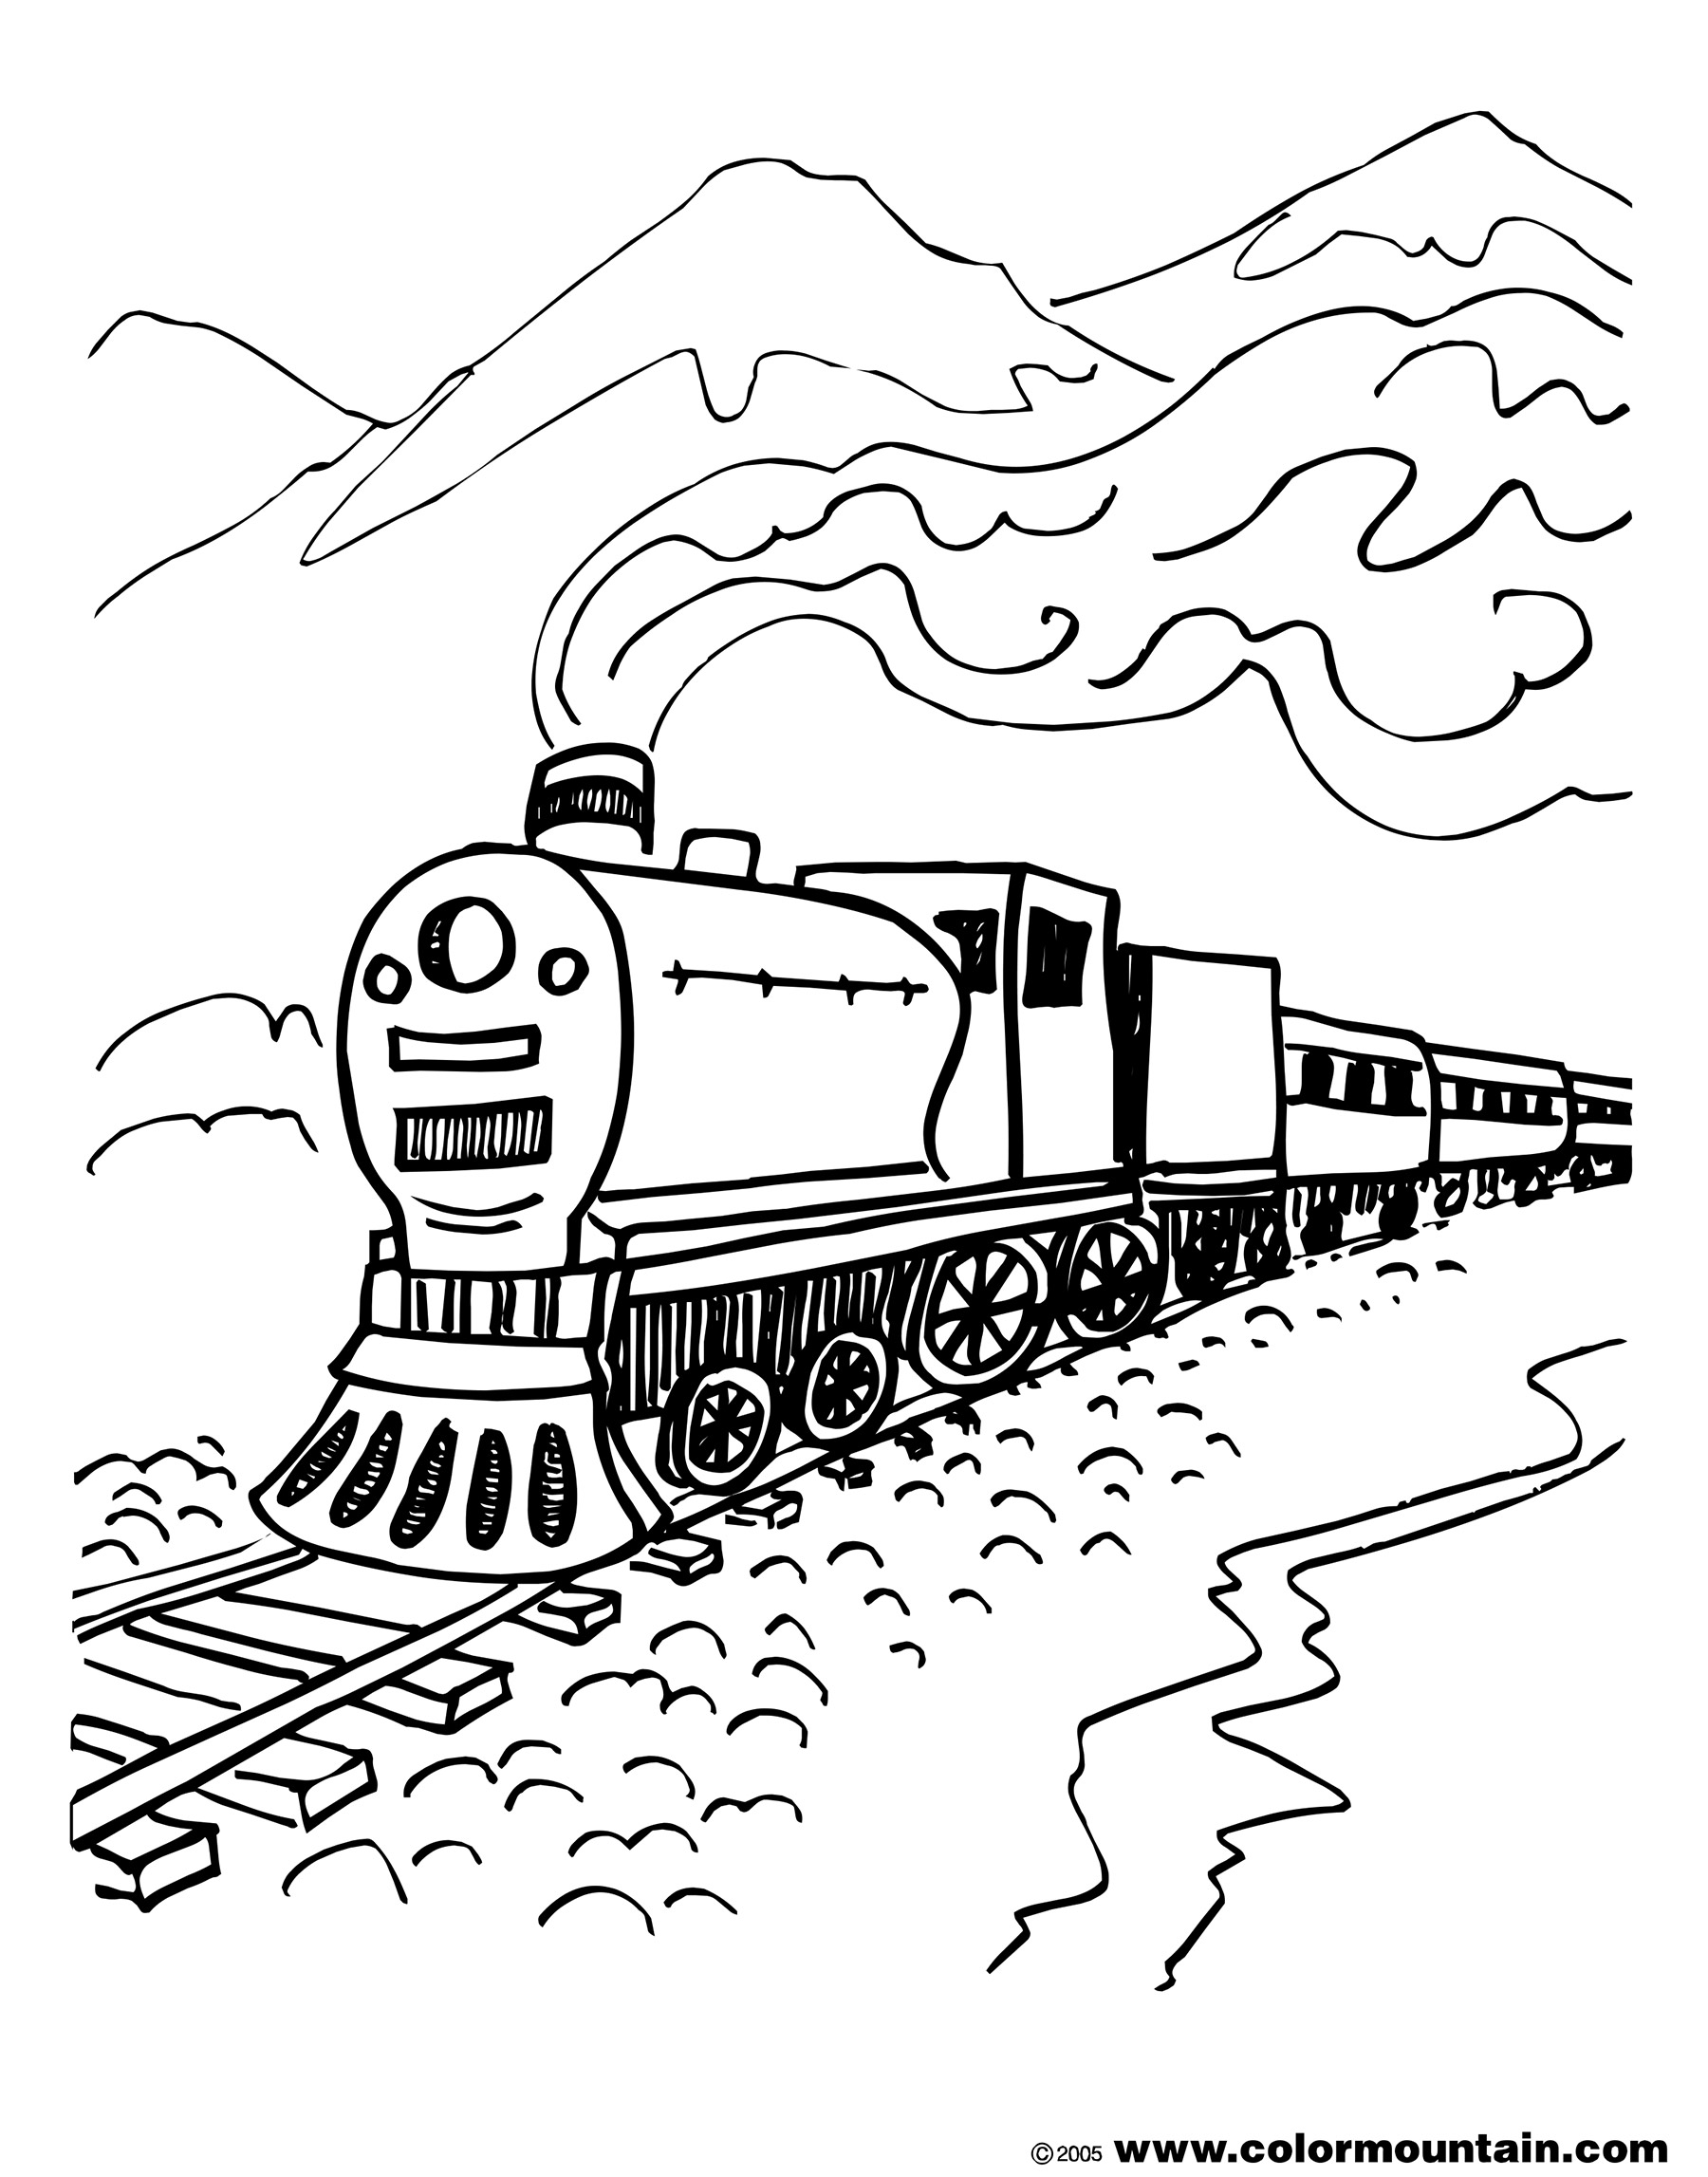 coloring page of train engine steam locomotive coloring page clrg coloring train page engine of